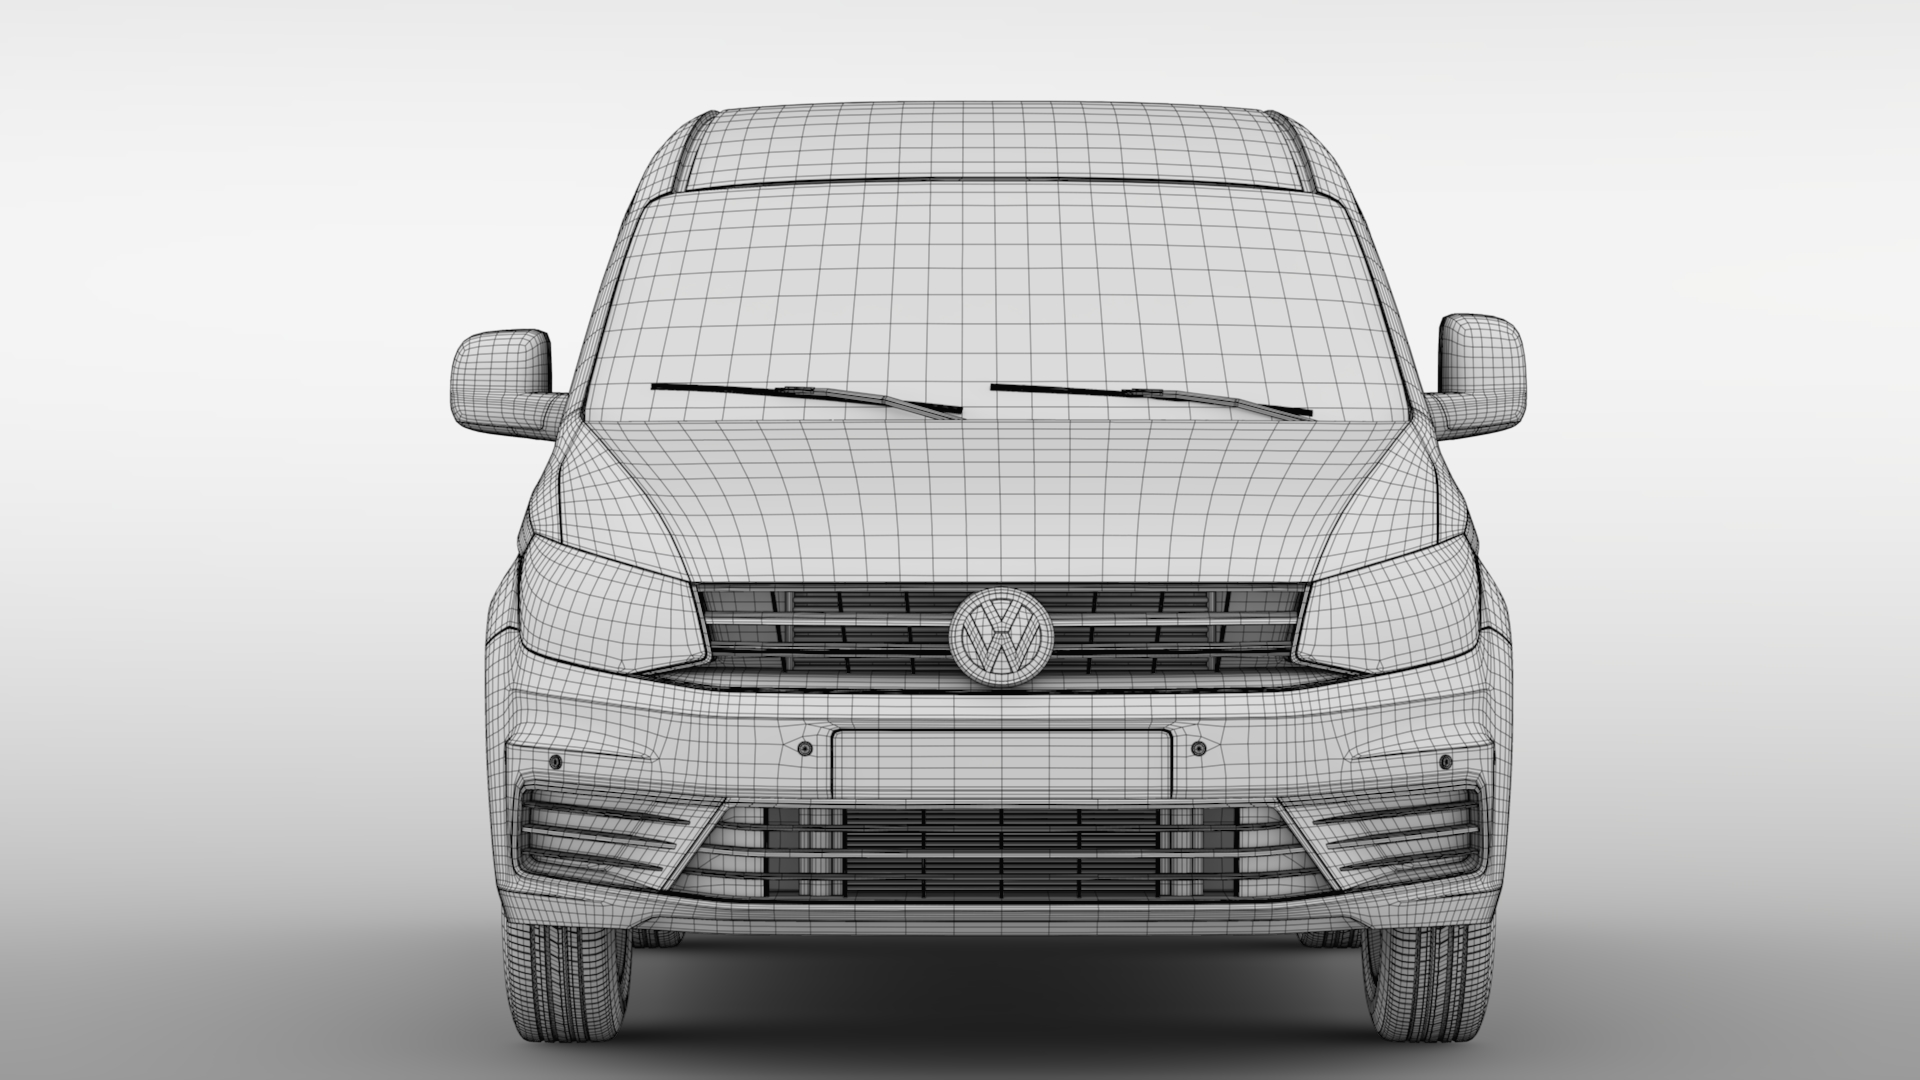 volkswagen caddy one man van 2017 3d model max fbx c4d lwo ma mb hrc xsi obj 275456